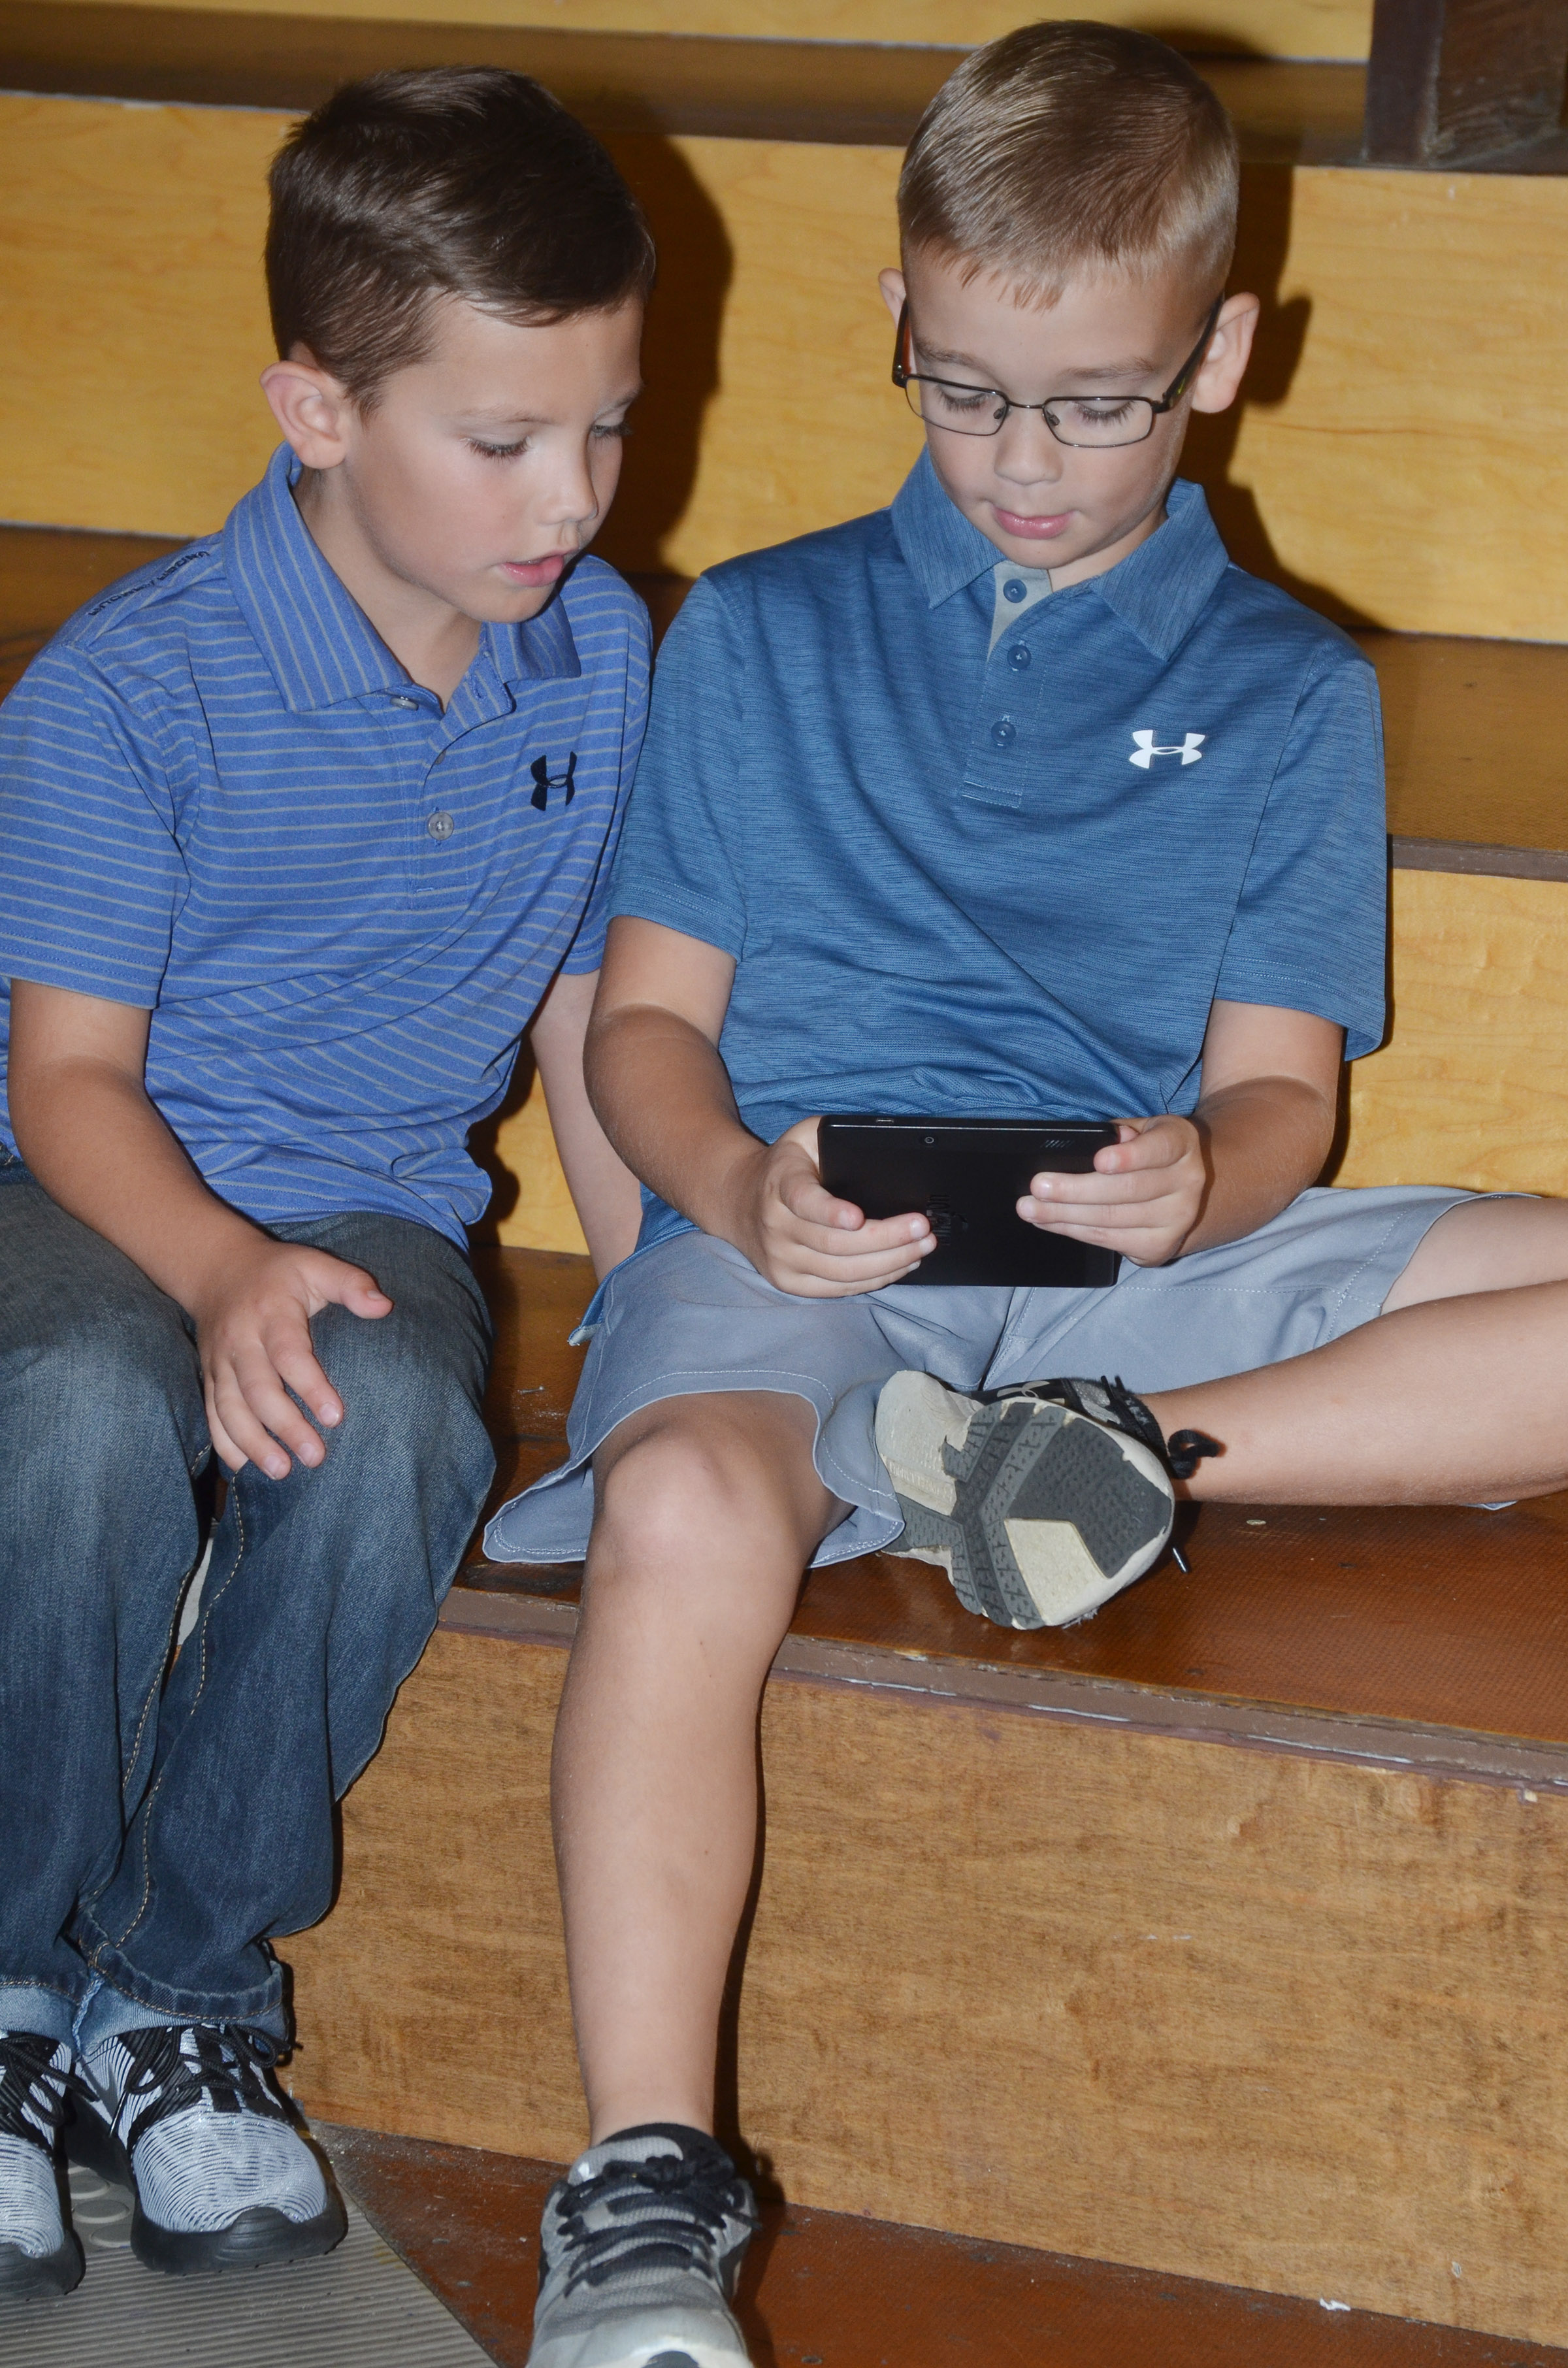 Campbellsville Elementary School second-grader Owen Skaggs, at left, and fourth-grader Cameron Estes watch videos together during the annual CHS football dinner and auction.